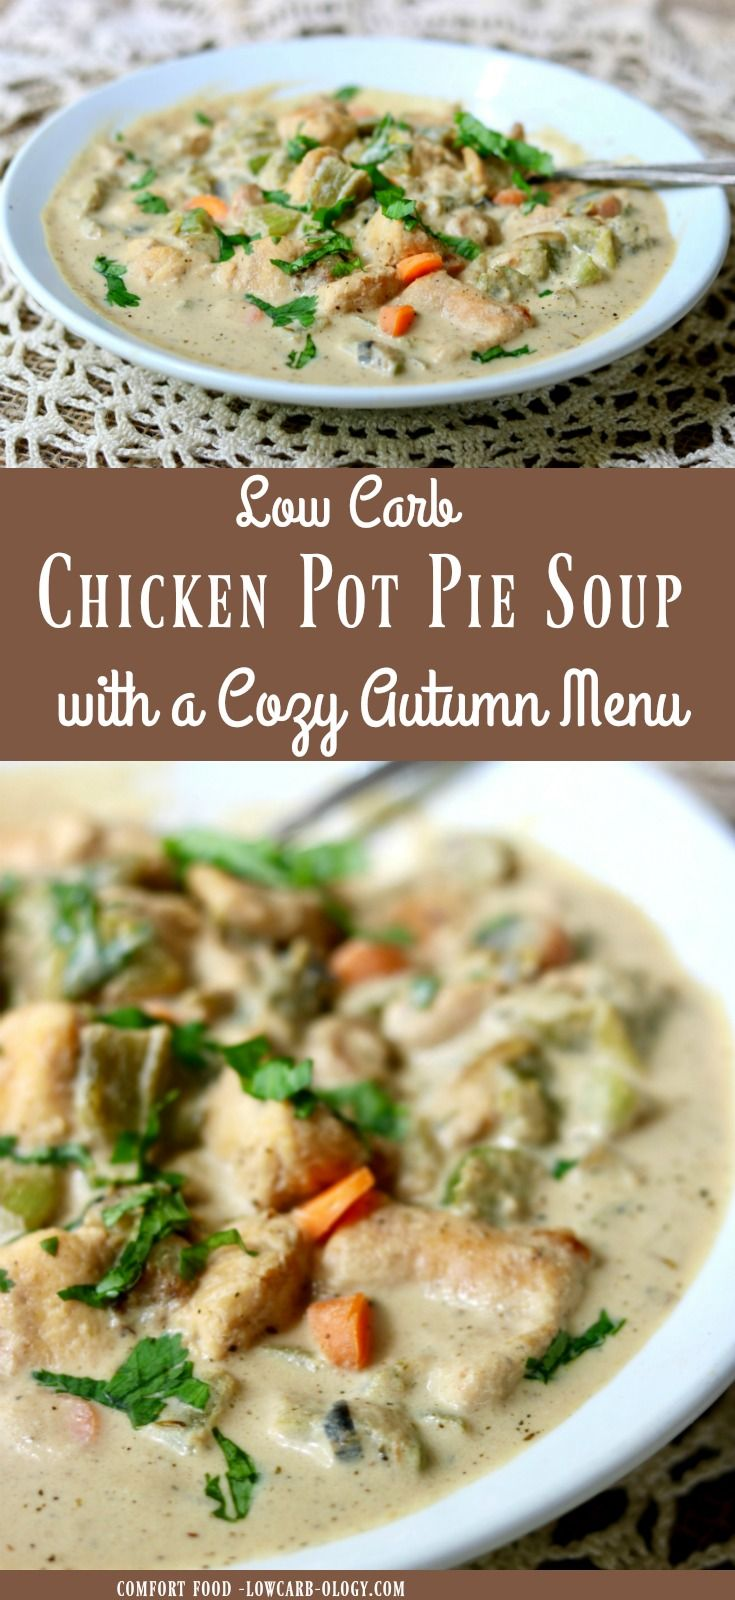 Chicken pot pie soup low carb comfort lowcarb ology chicken pot pie soup recipe is creamy low carb comfort food that will warm your soul forumfinder Images